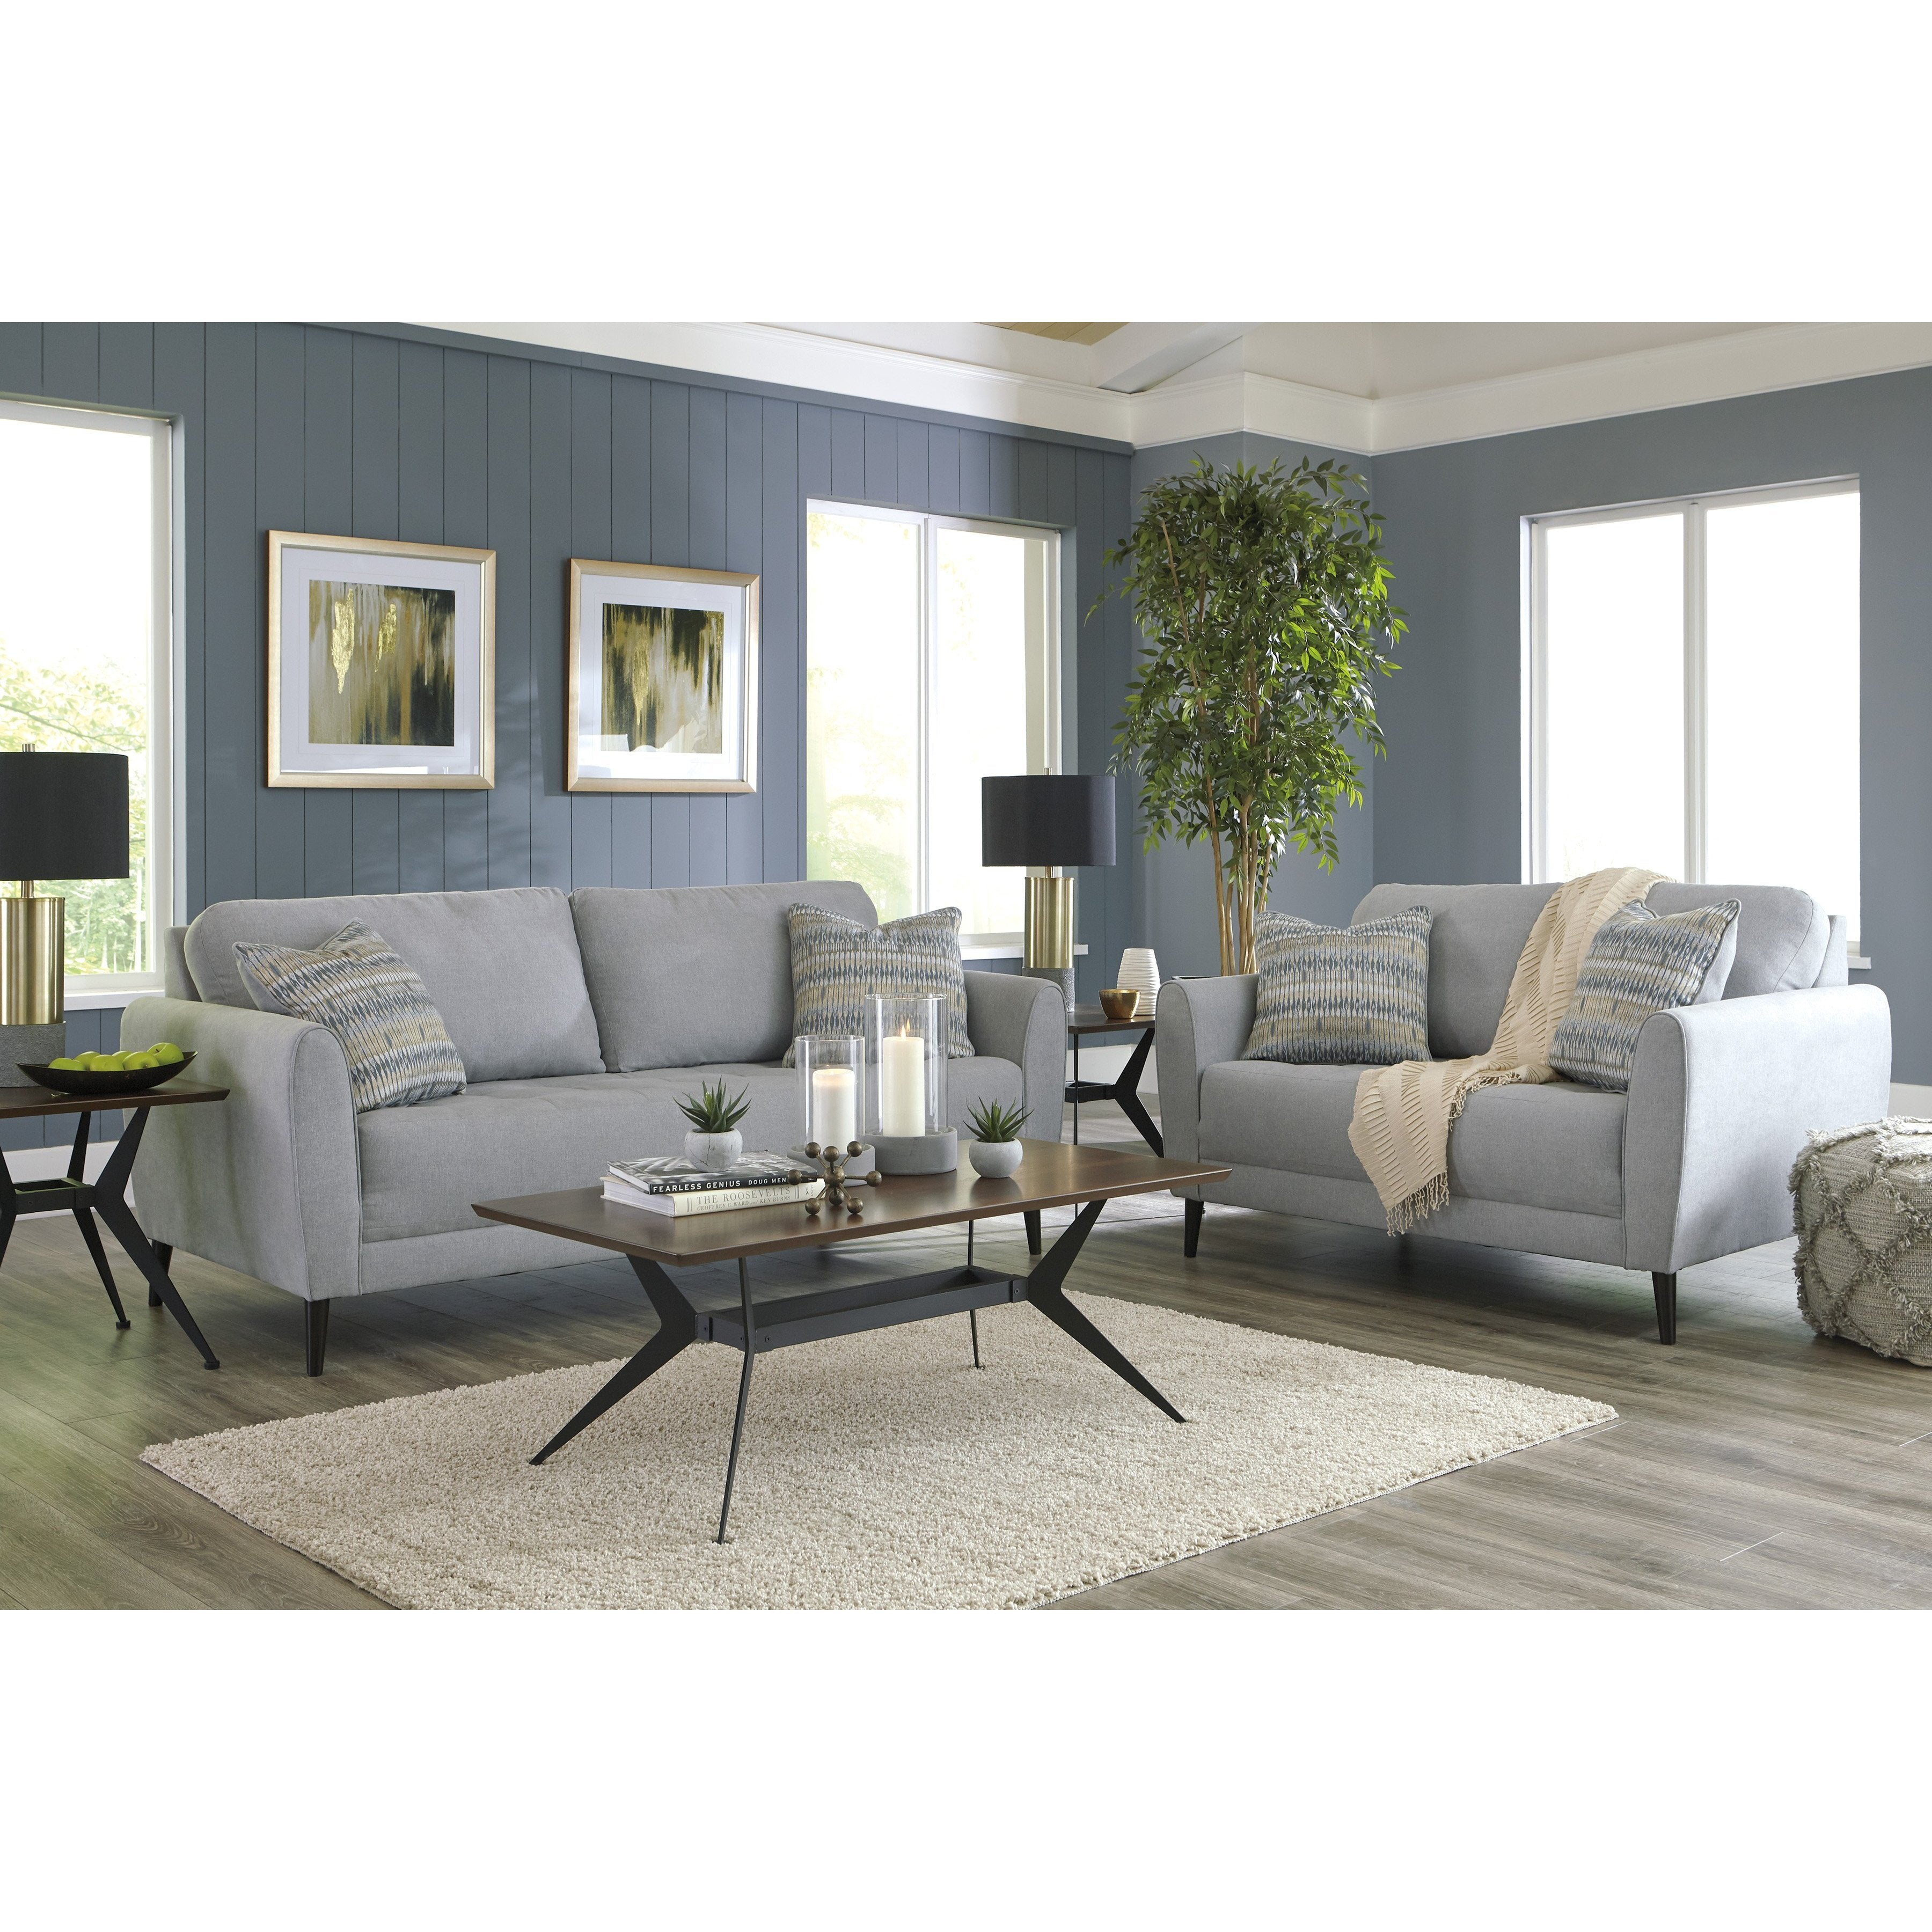 Cardallo Living Room Set